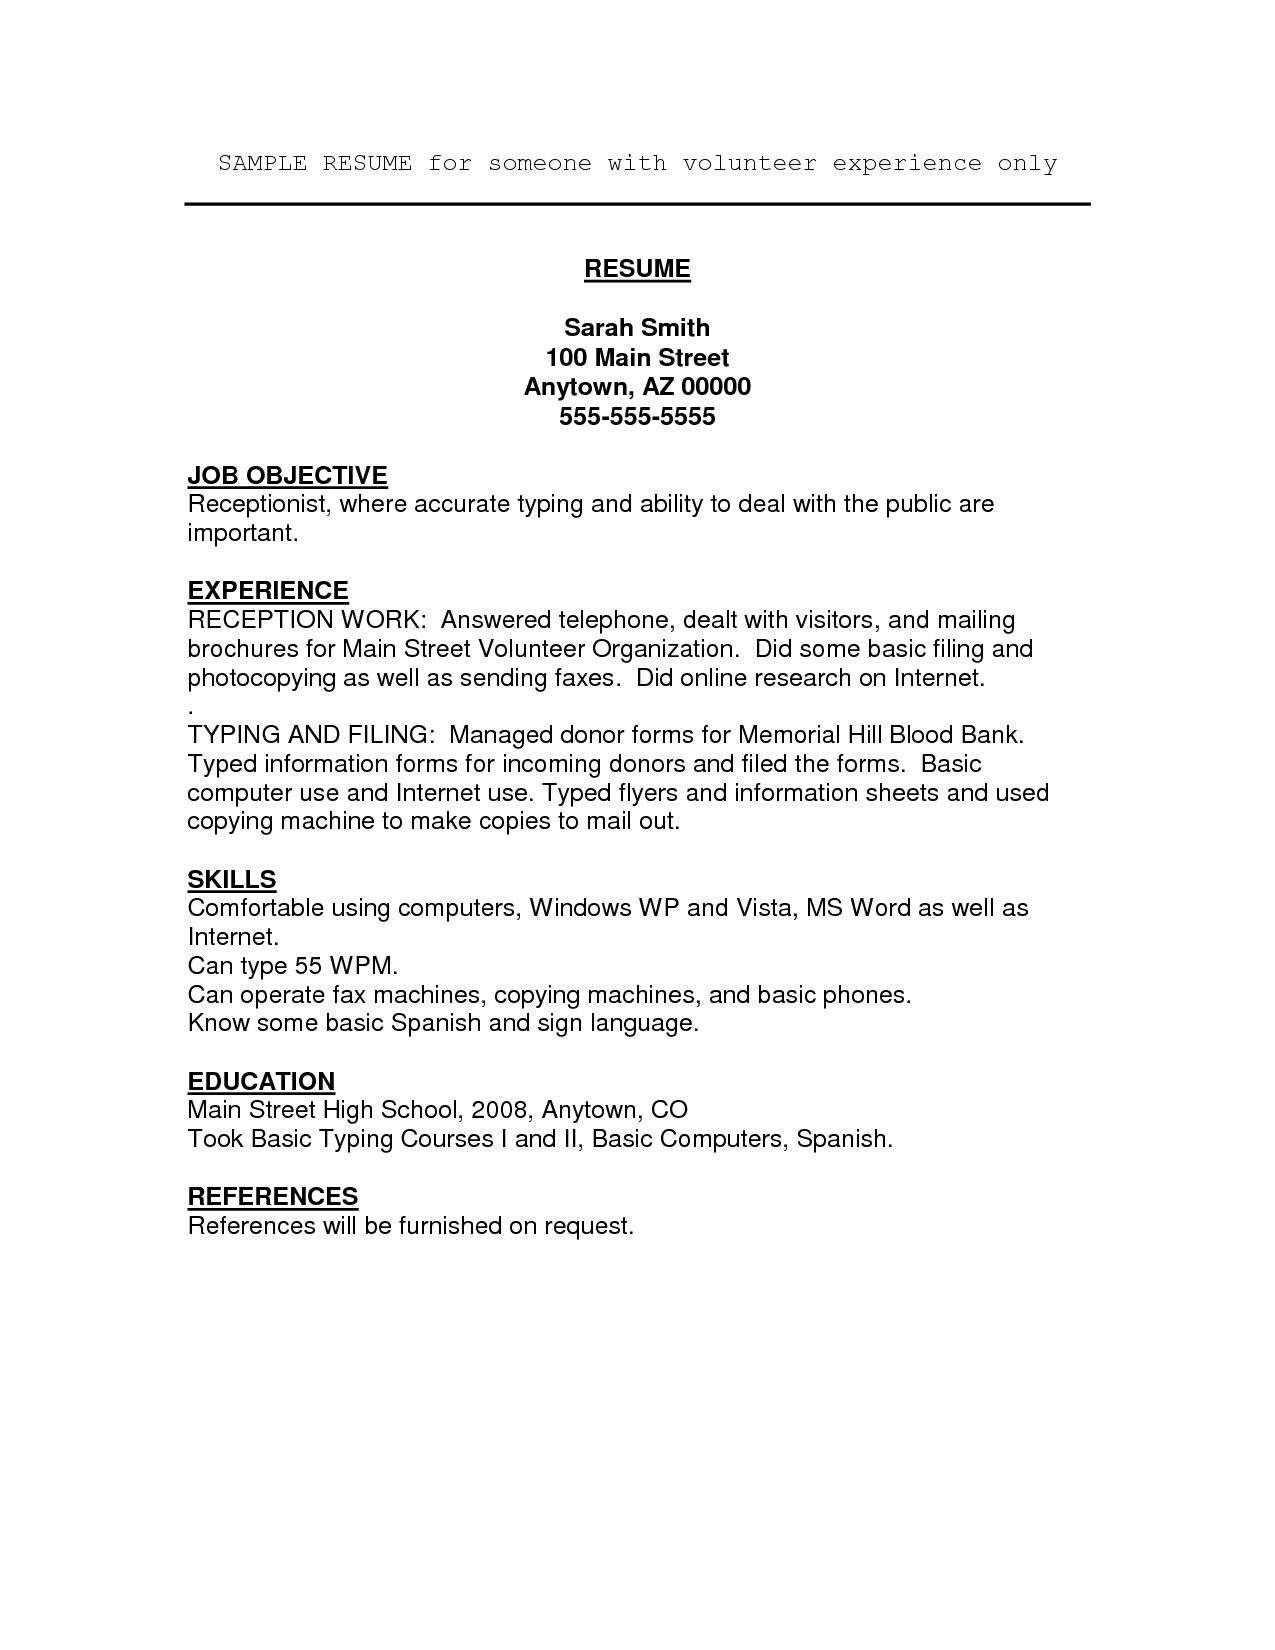 Resume Template For Volunteer Work Fresh Ideas Volunteer Resume Sample 14  Showing Work   CV Resume Ideas  Examples Of Work Experience